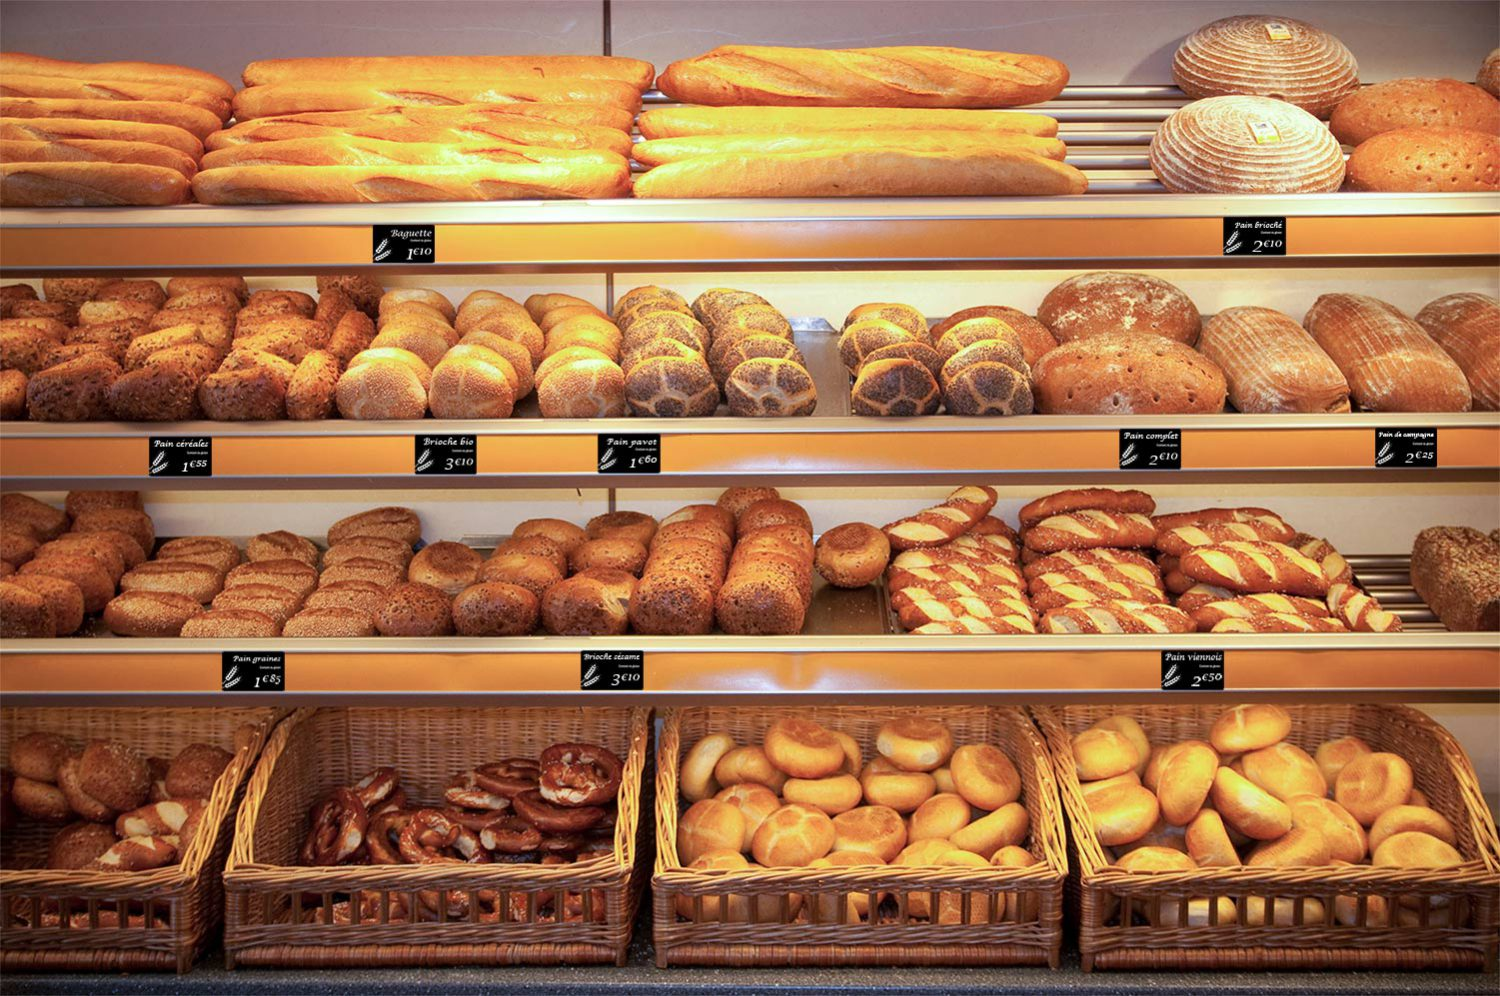 Bakery Bread Price Tags designed and created by Edikio price tag solution